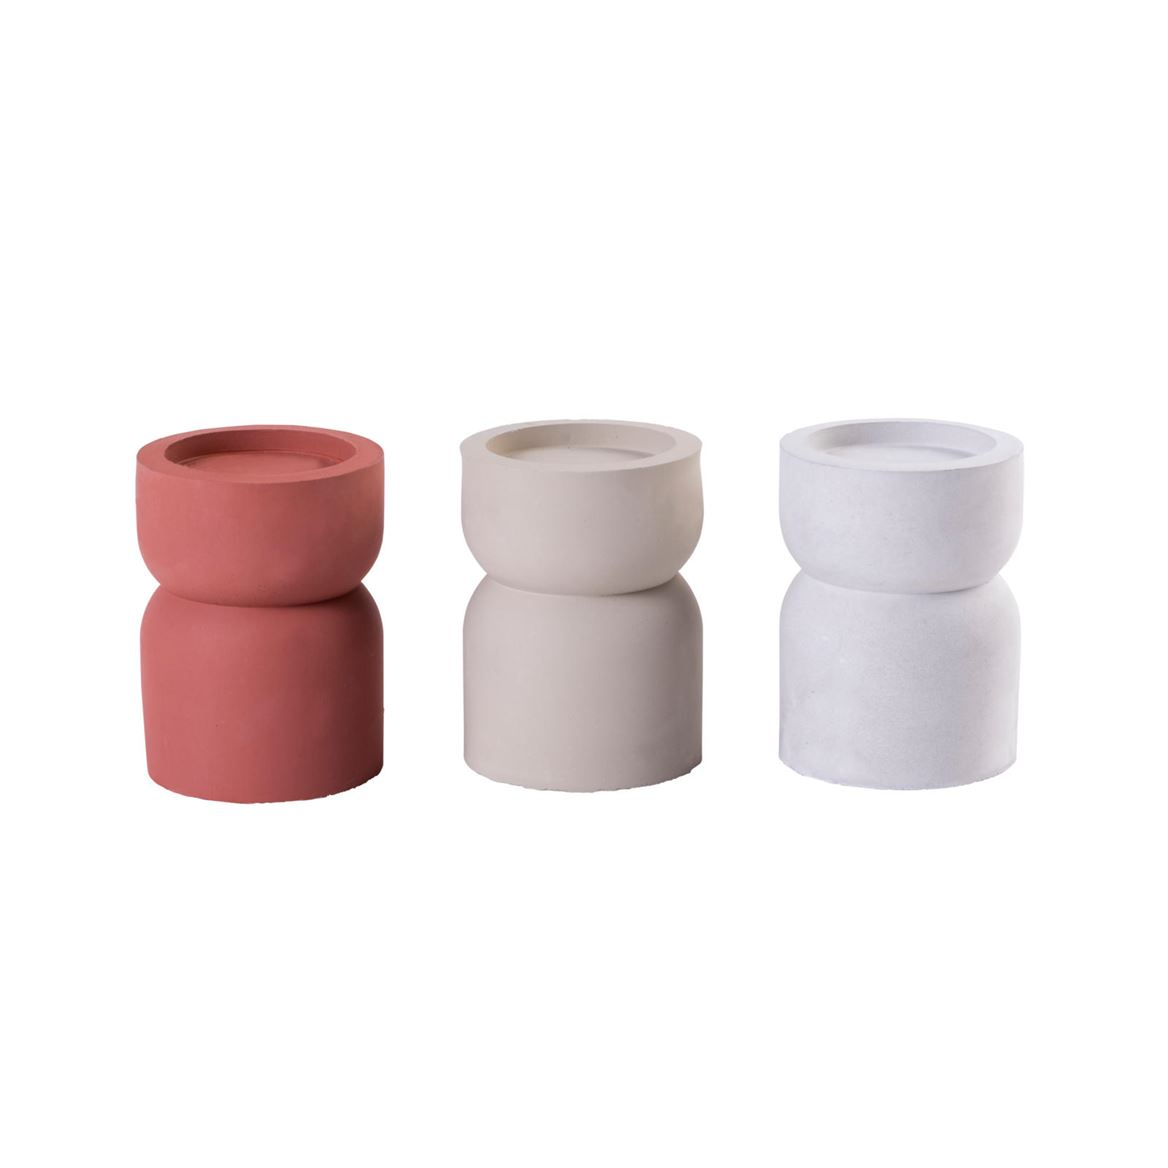 CEMENT Porte-bougie 3 couleurs gris, orange, beige H 12,5 cm; Ø 9,5 cm_cement-porte-bougie-3-couleurs-gris,-orange,-beige-h-12,5-cm;-ø-9,5-cm